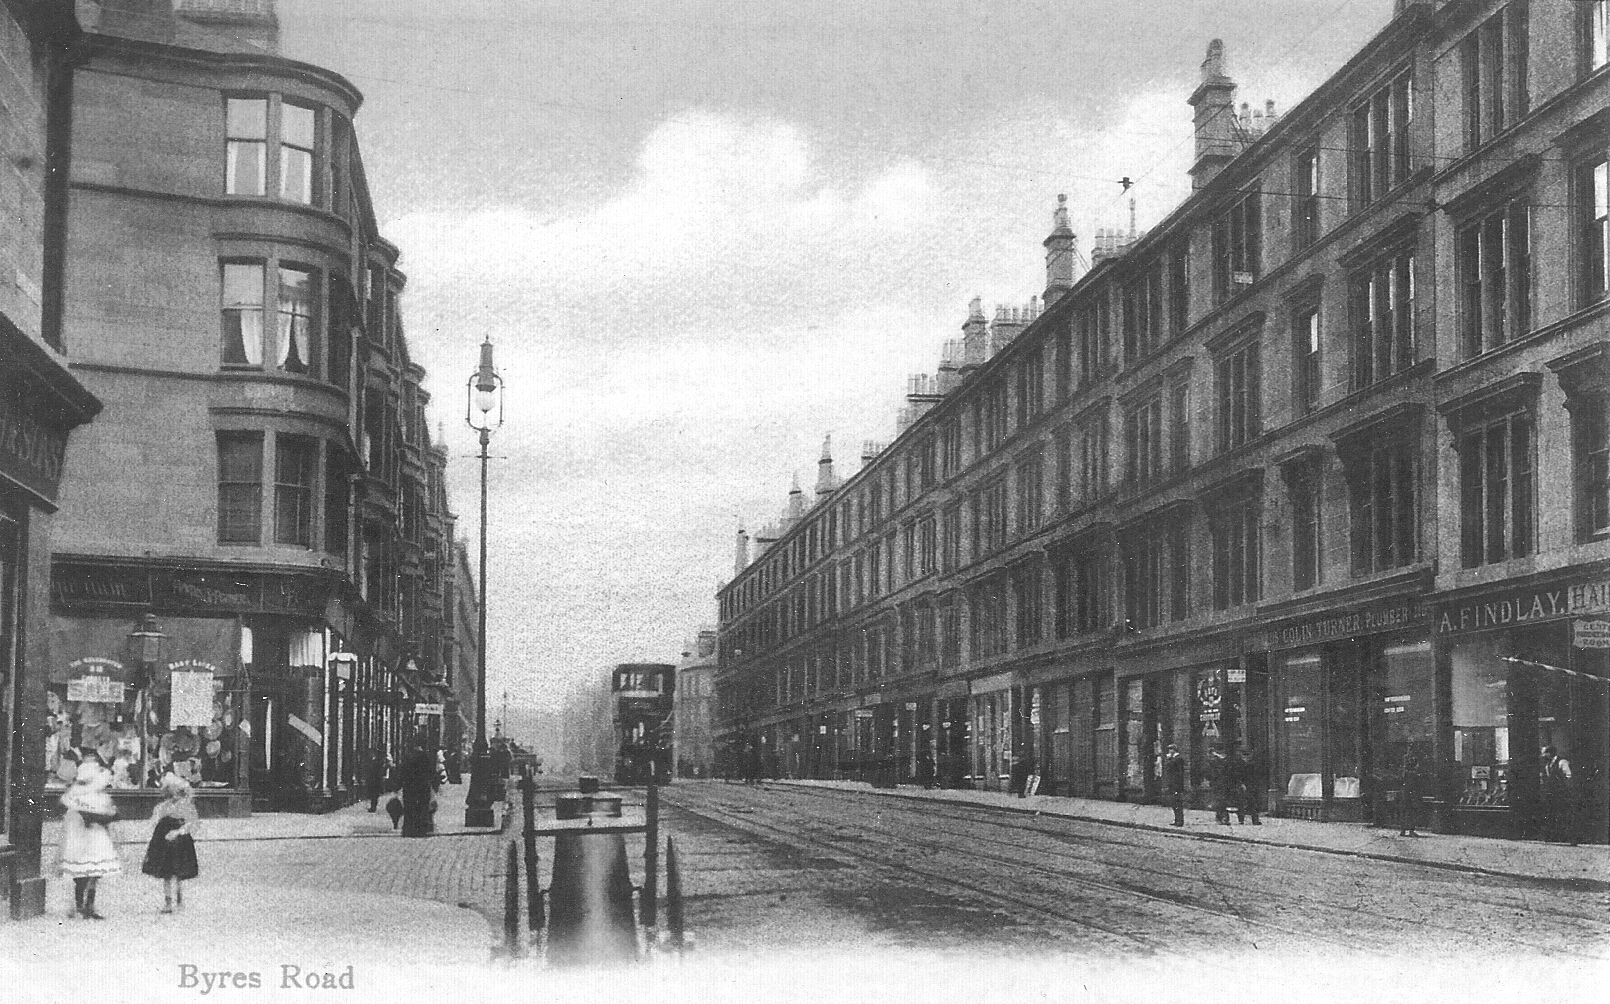 Looking north up Byres Road